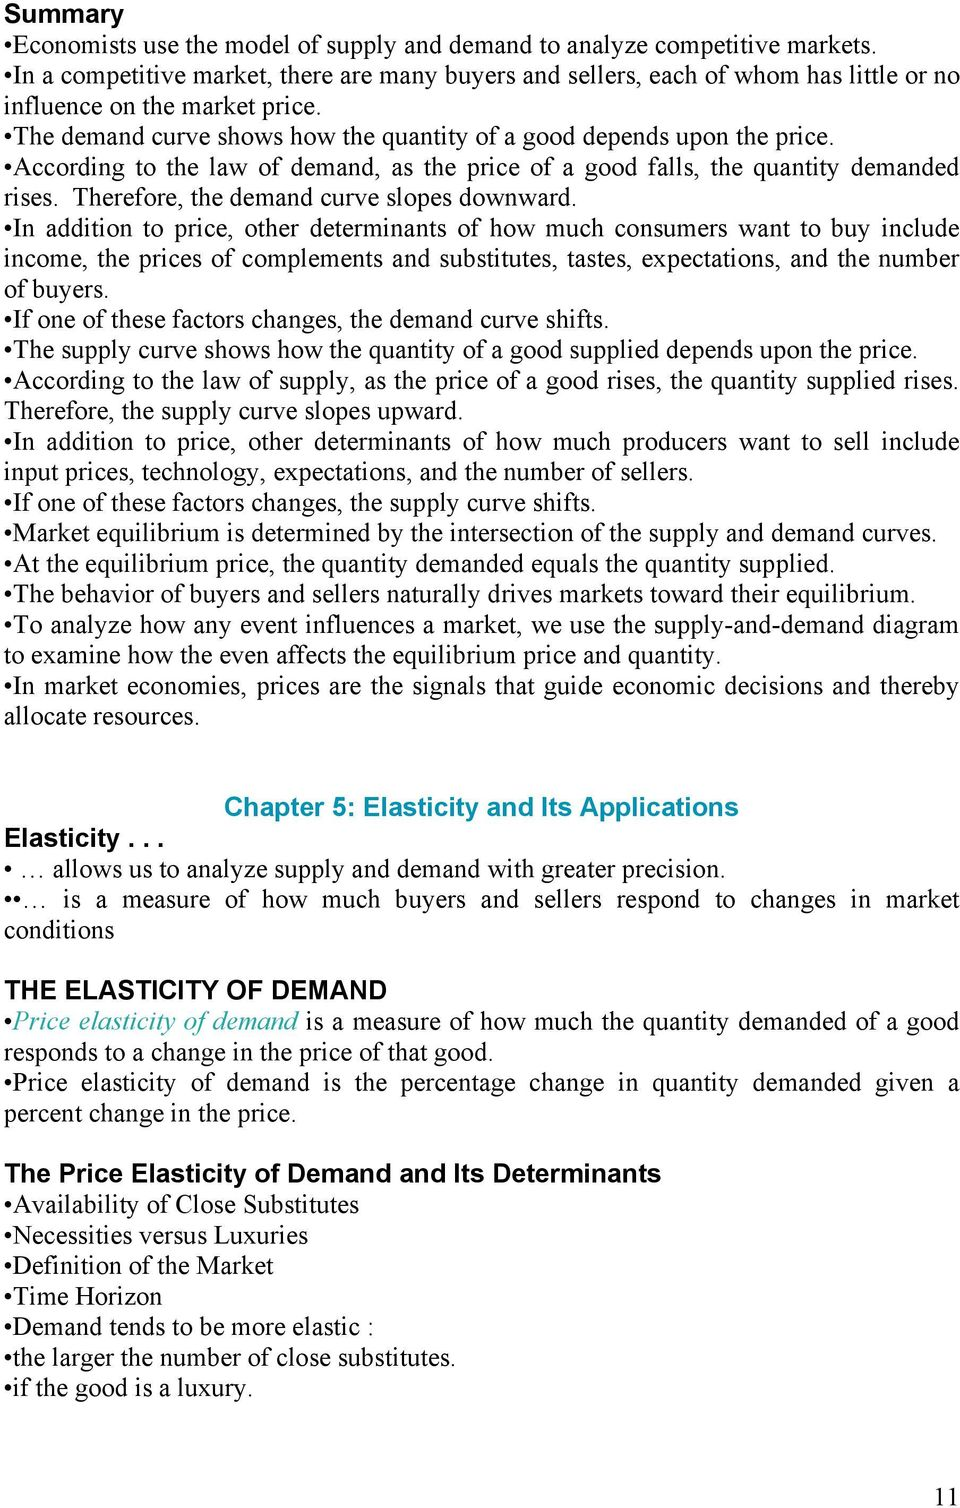 According to the law of demand, as the price of a good falls, the quantity demanded rises. Therefore, the demand curve slopes downward.